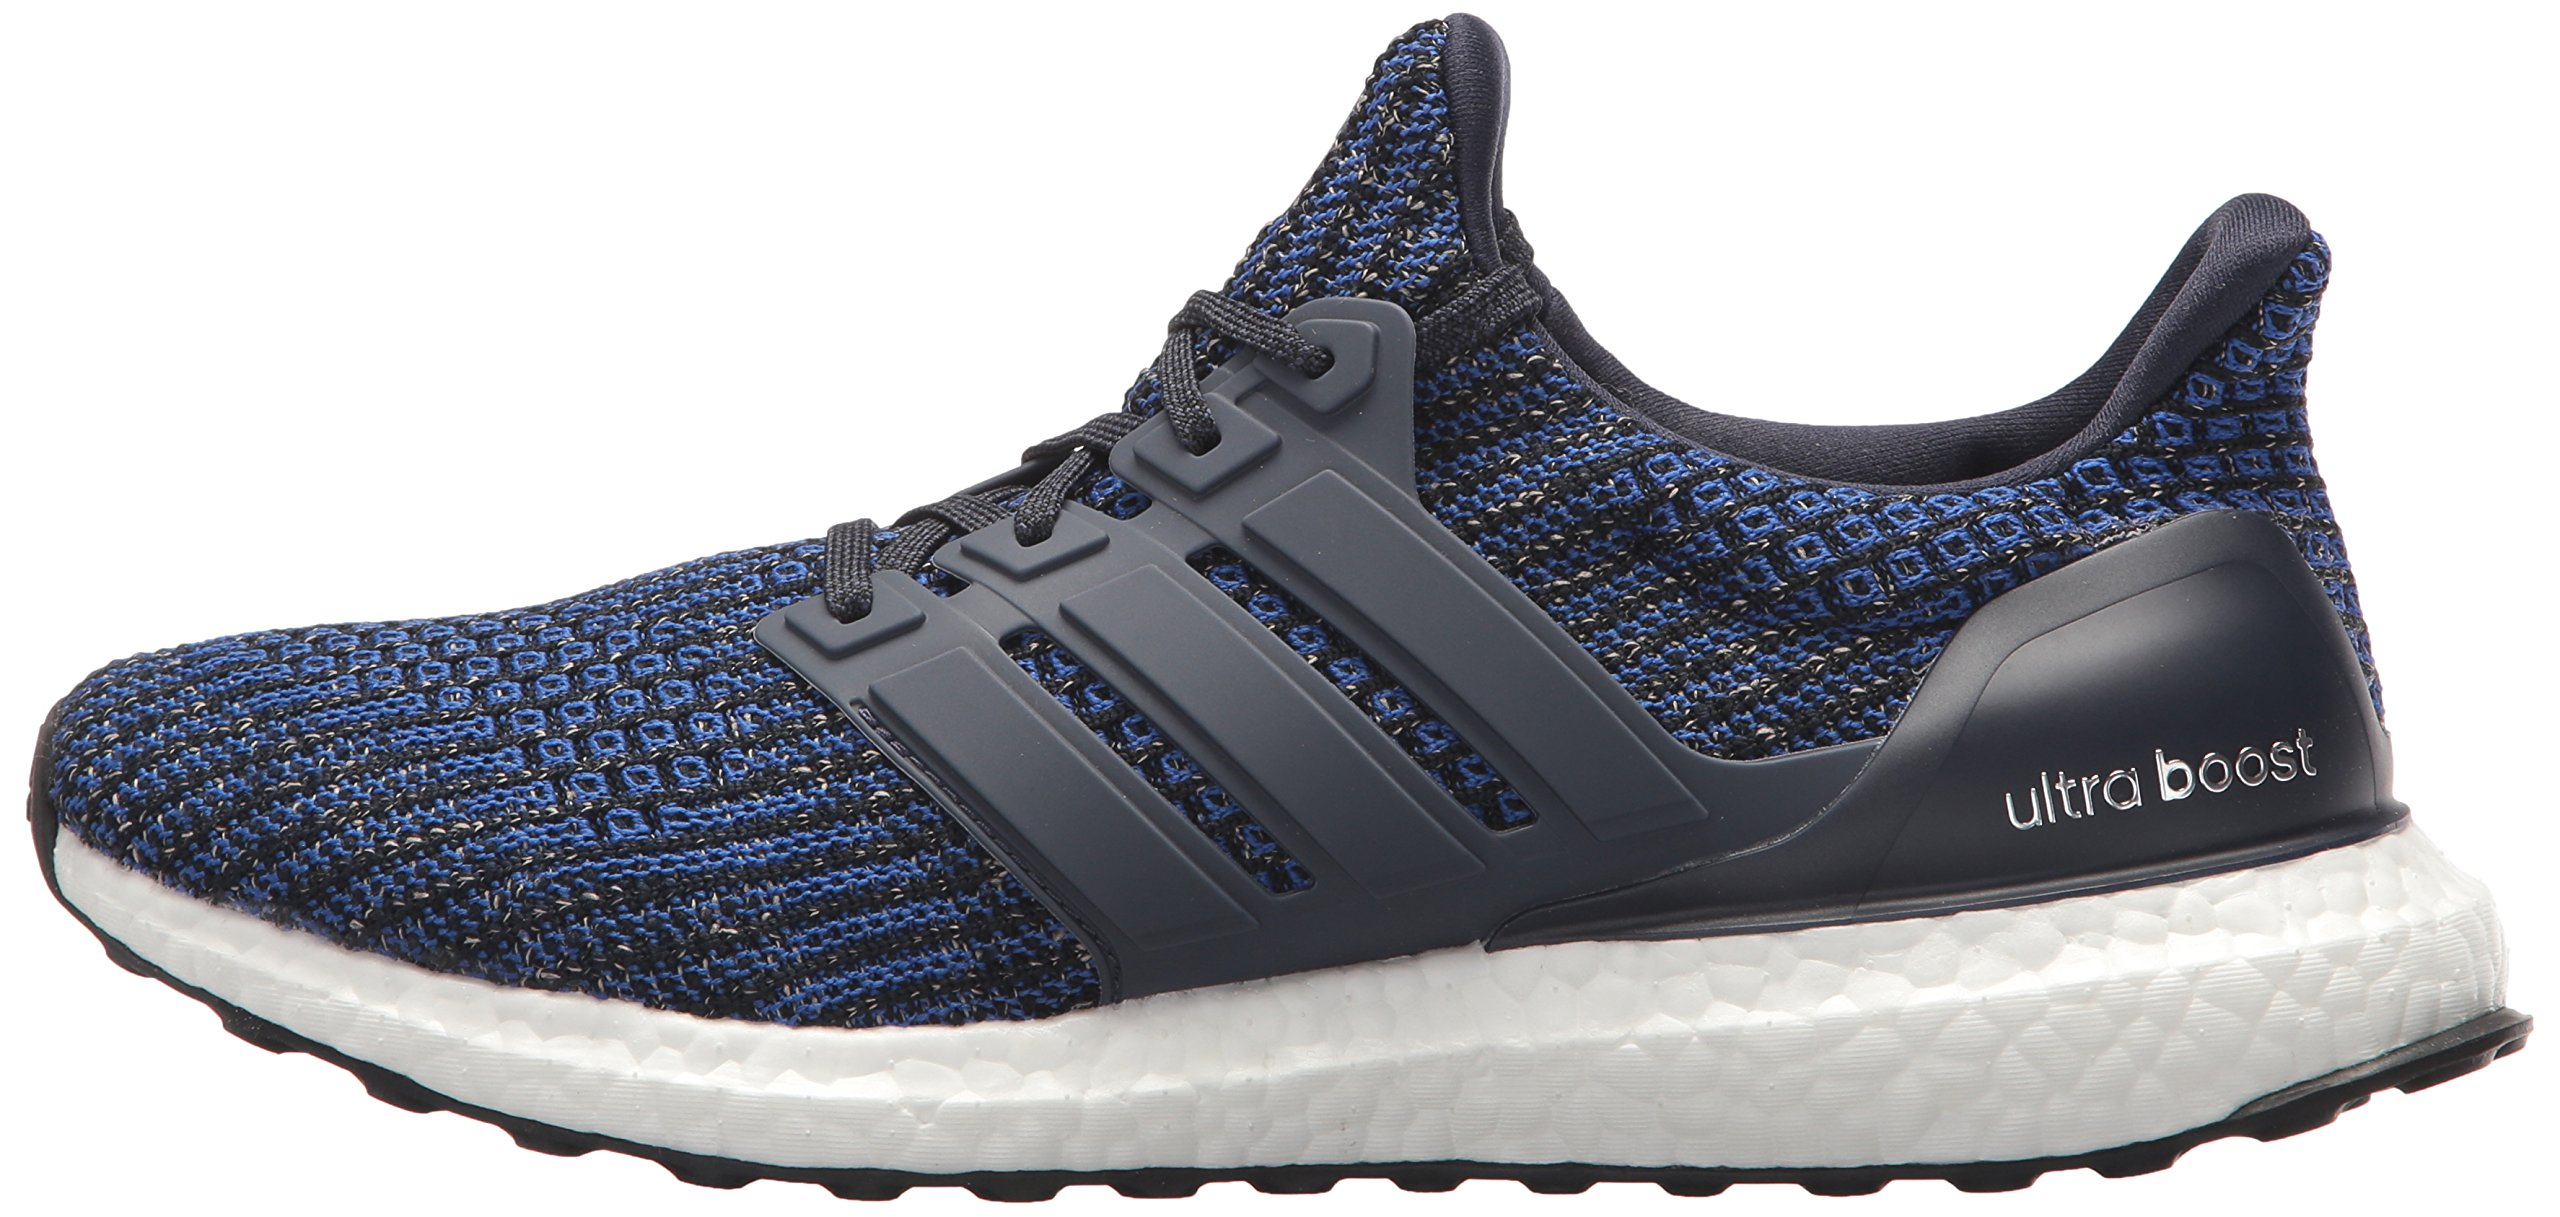 timeless design 442c9 62548 adidas Men s Ultraboost Road Running Shoe, Carbon Legend Ink Core Black, 9  M US - CP9250-099-9 M US   Road Running   Clothing, Shoes   Jewelry - tibs